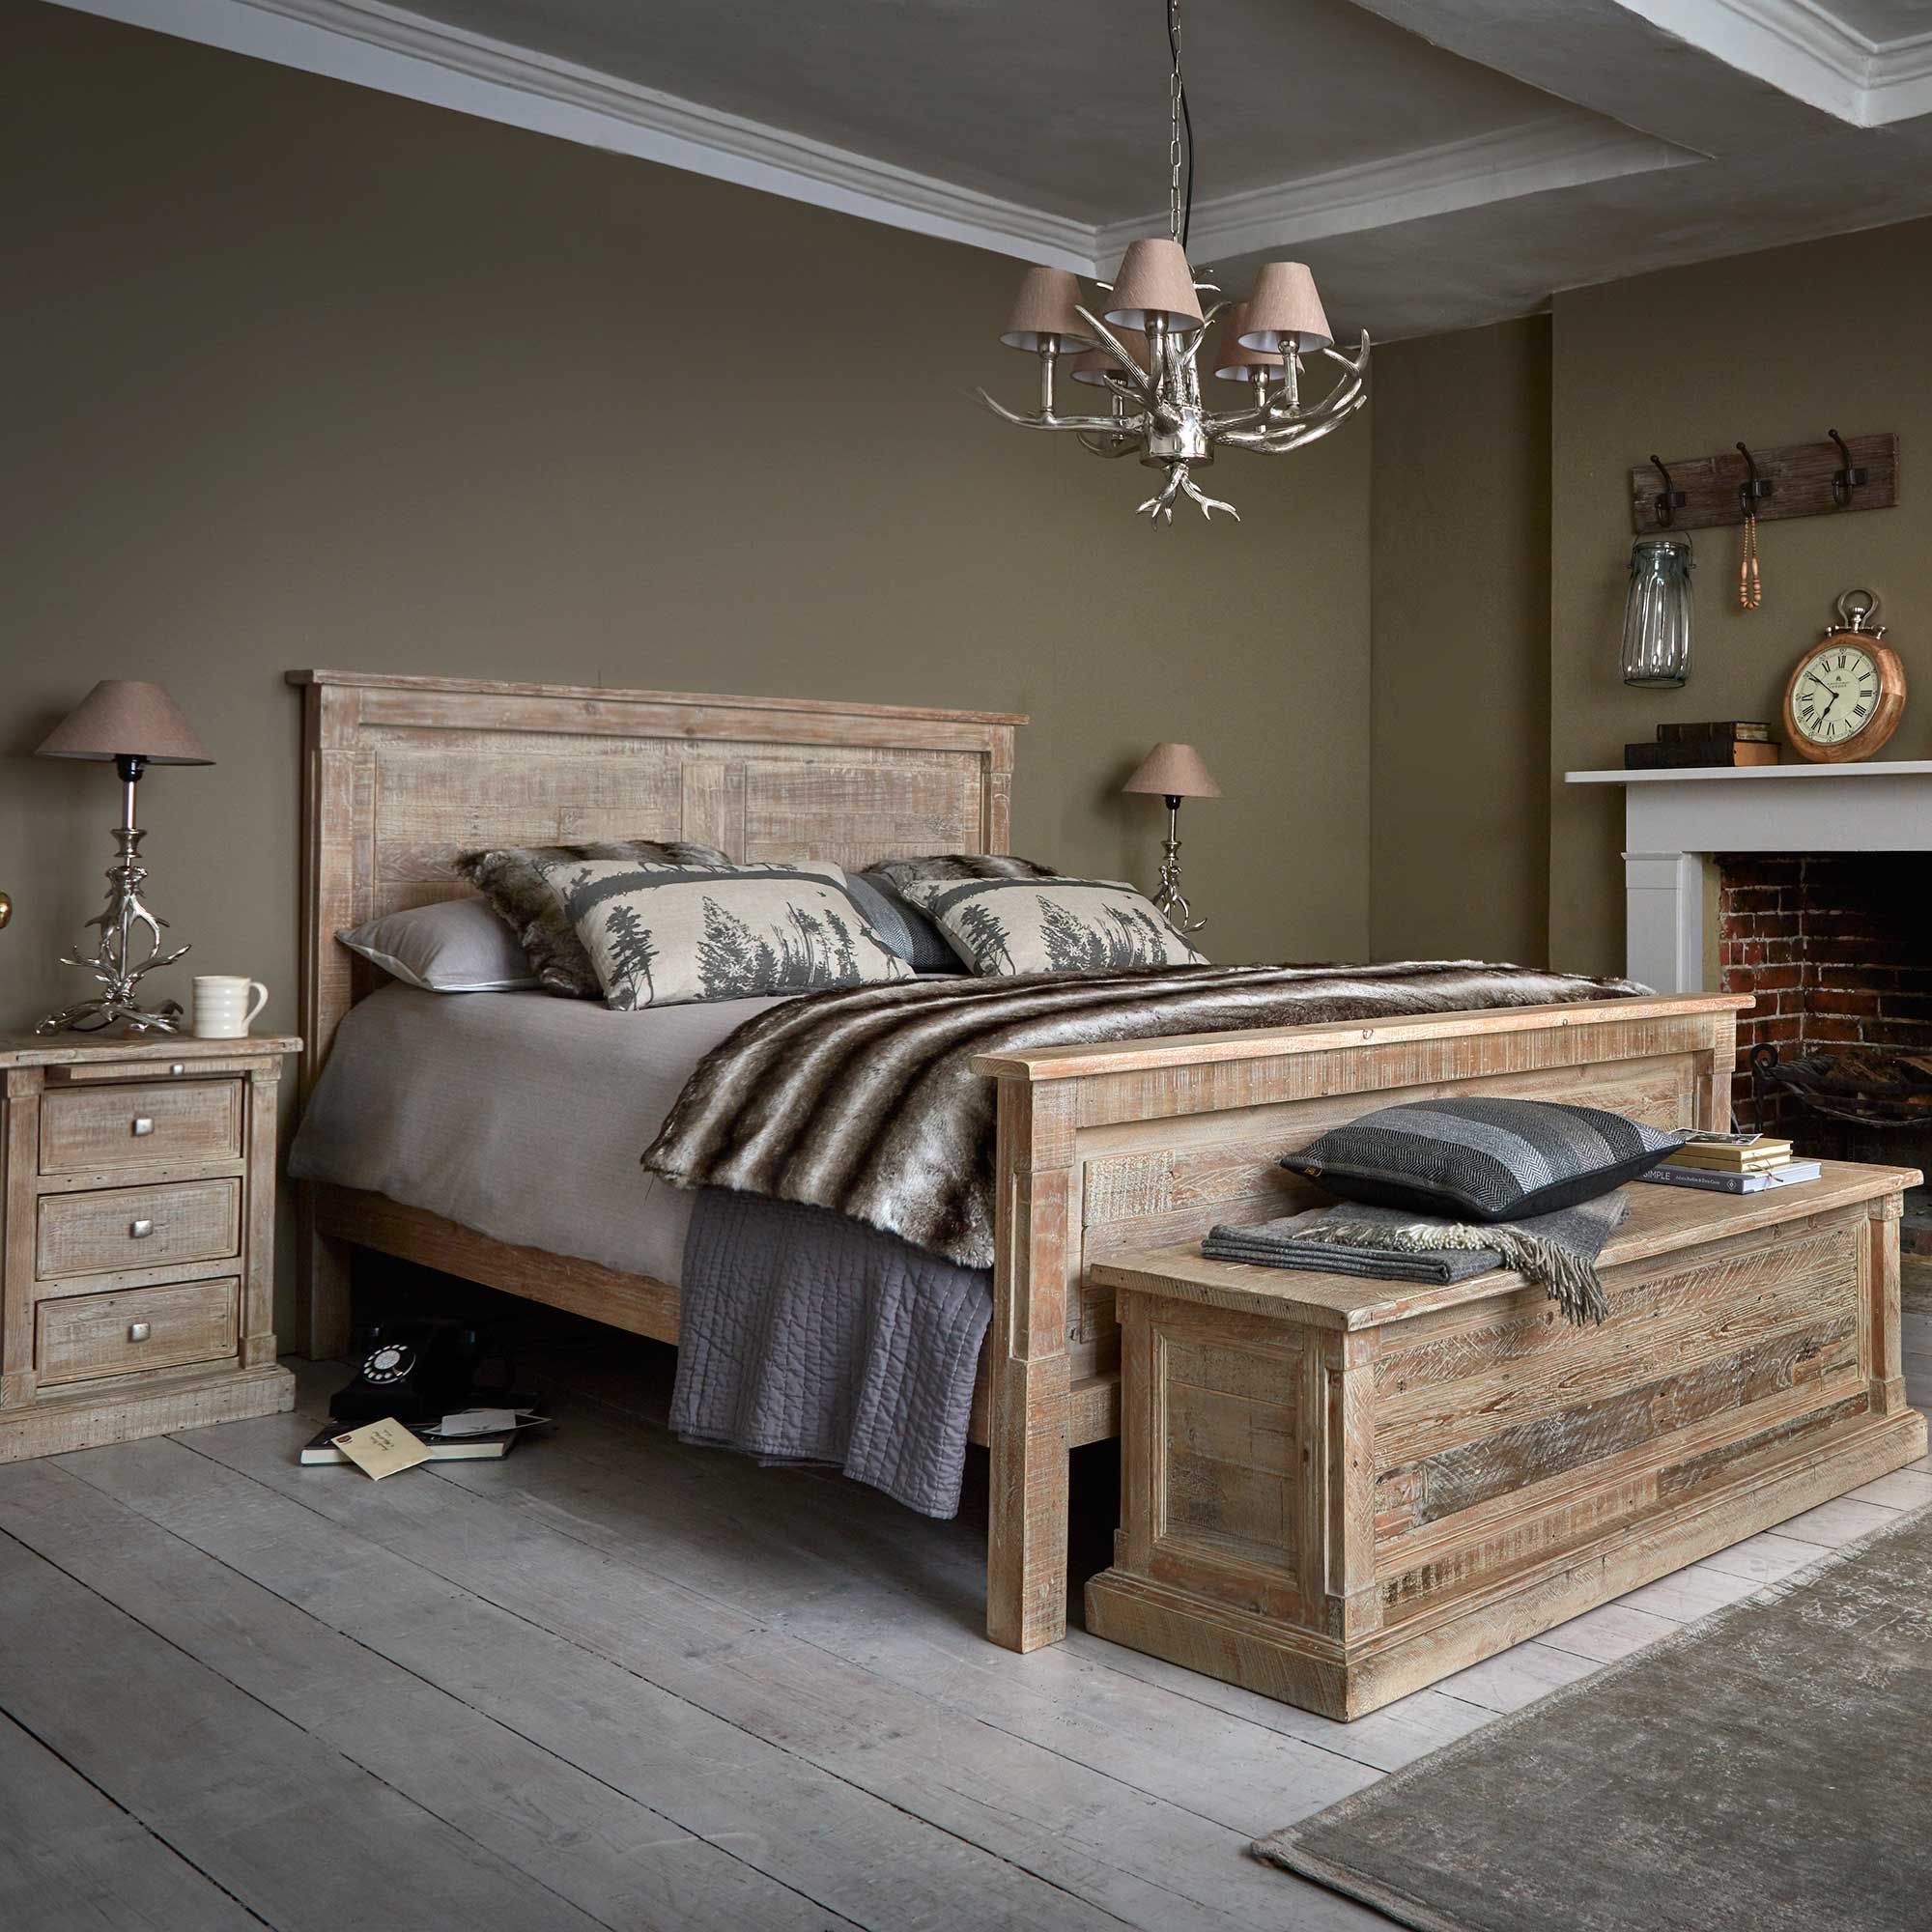 Furniturebuyconsignmentfrisco With Images Rustic Bedroom Furniture Rustic Bedroom Wood Bedroom Furniture